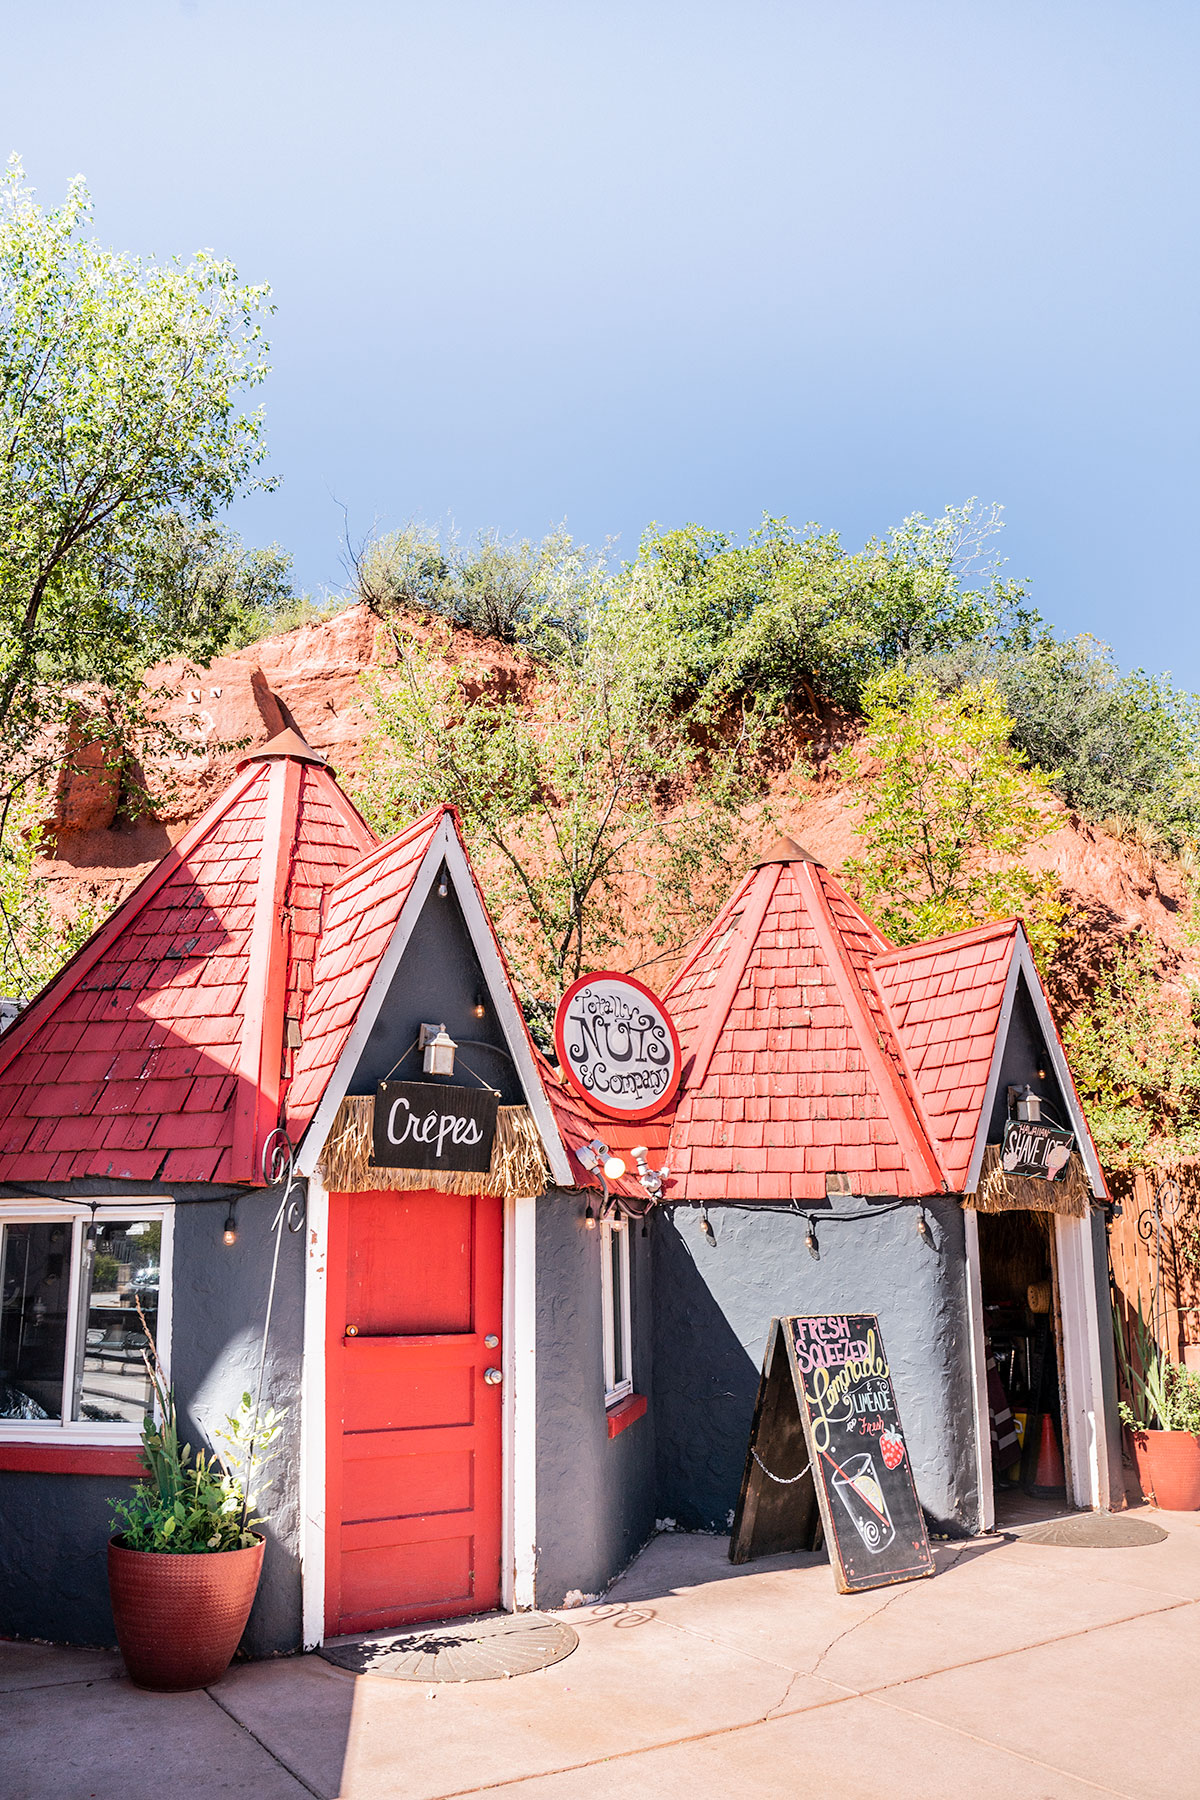 Manitou-Springs-Cute-Shops-Colorado